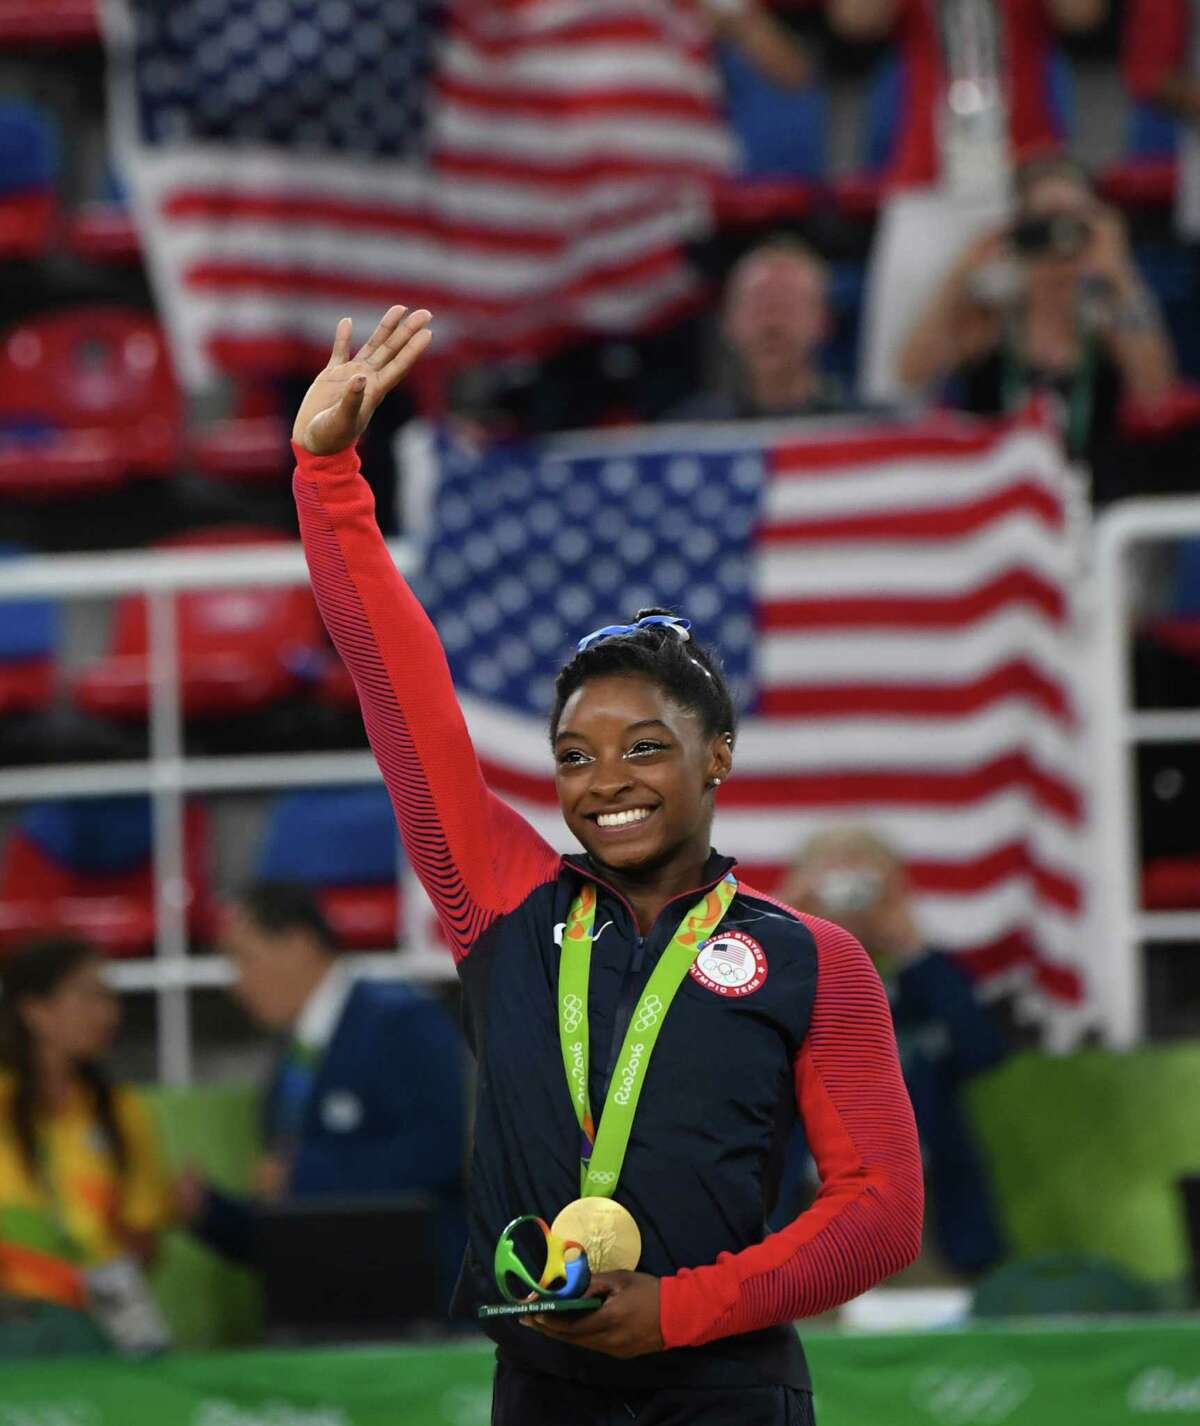 Simone Biles will compete in vault, balance beam and floor exercise over the next three days in a bid to make Olympic history.